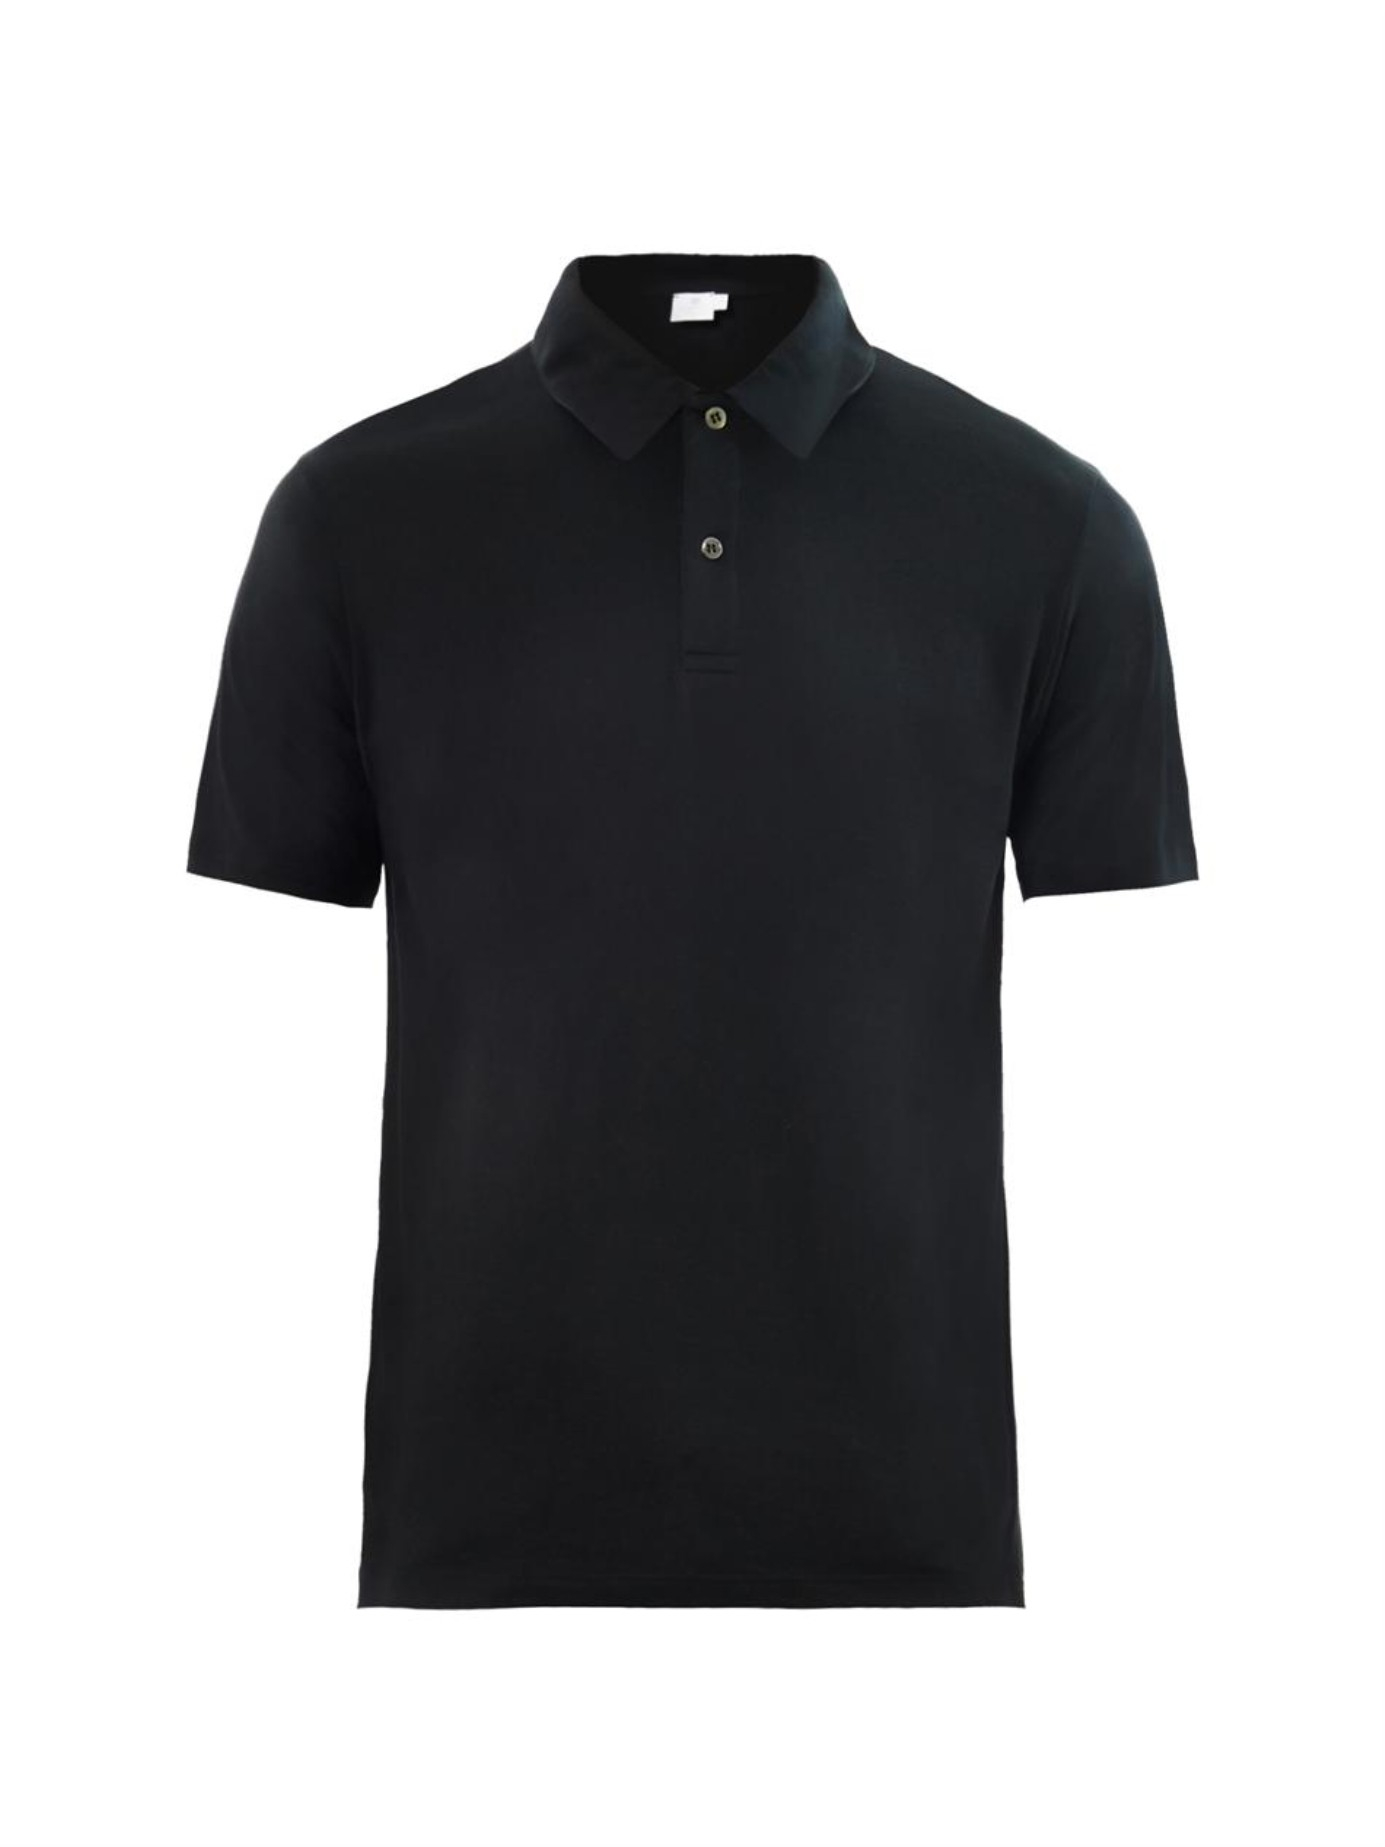 sunspel cotton jersey polo shirt in black for men lyst